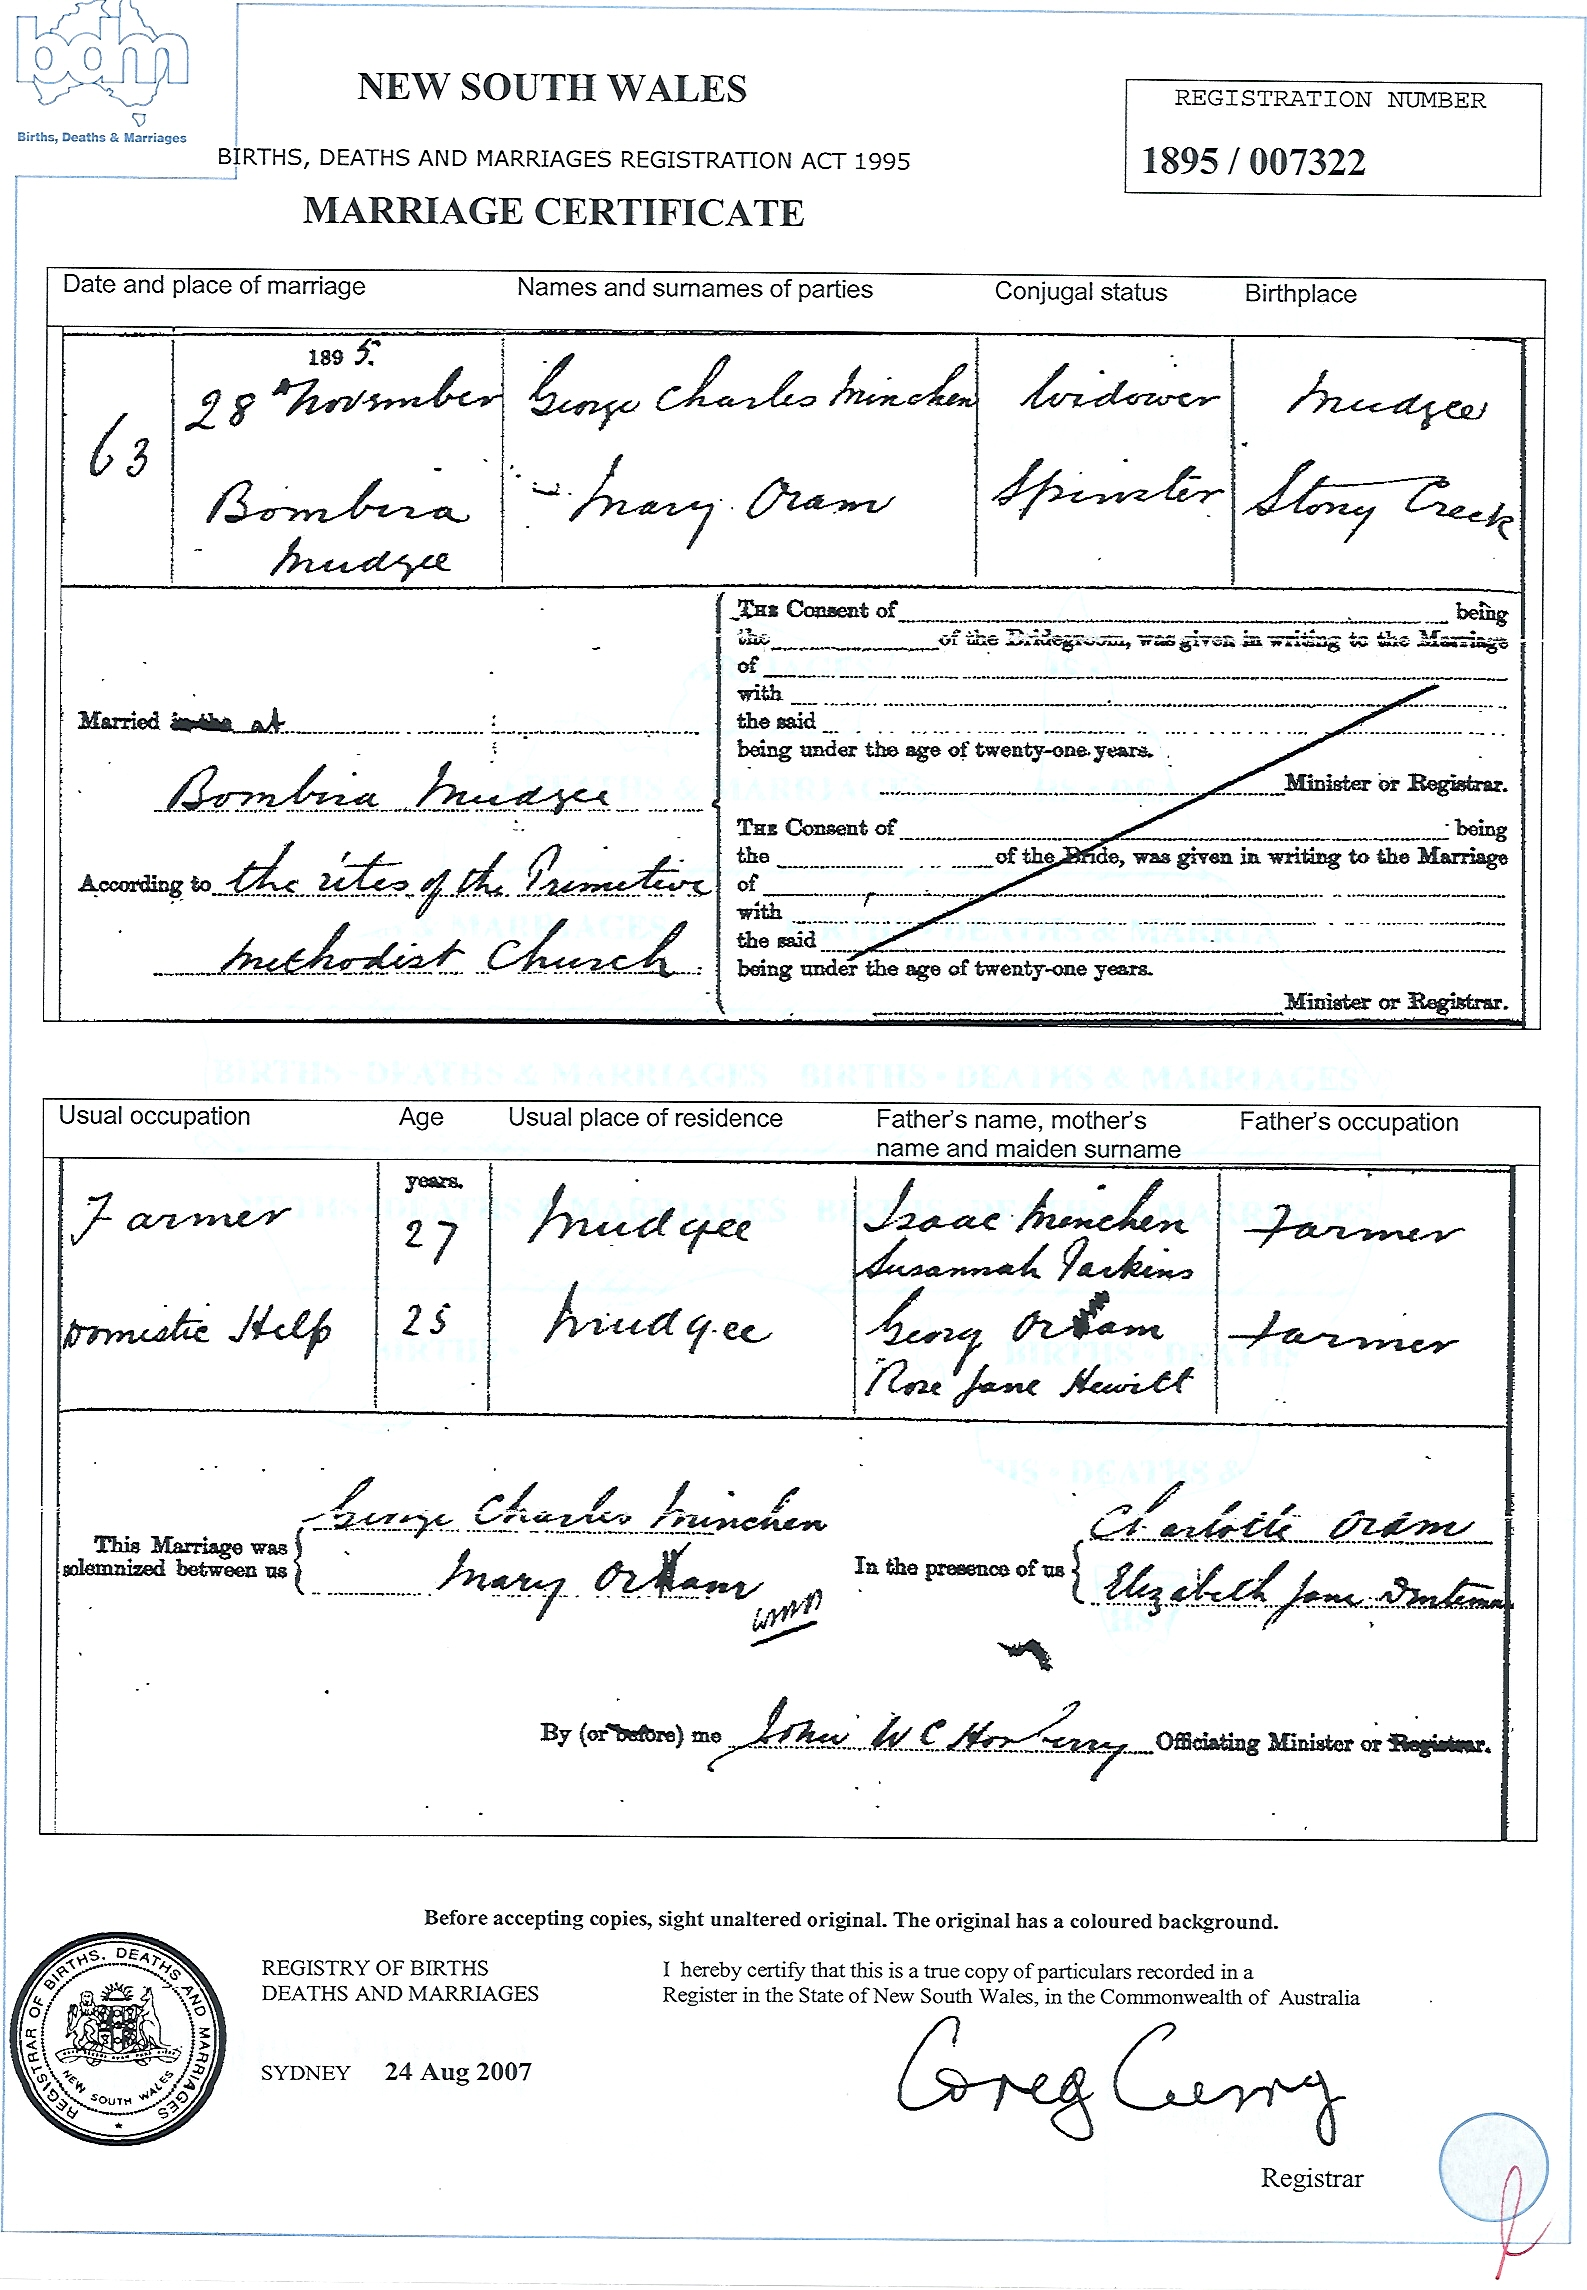 Marriage-Certificate.jpg